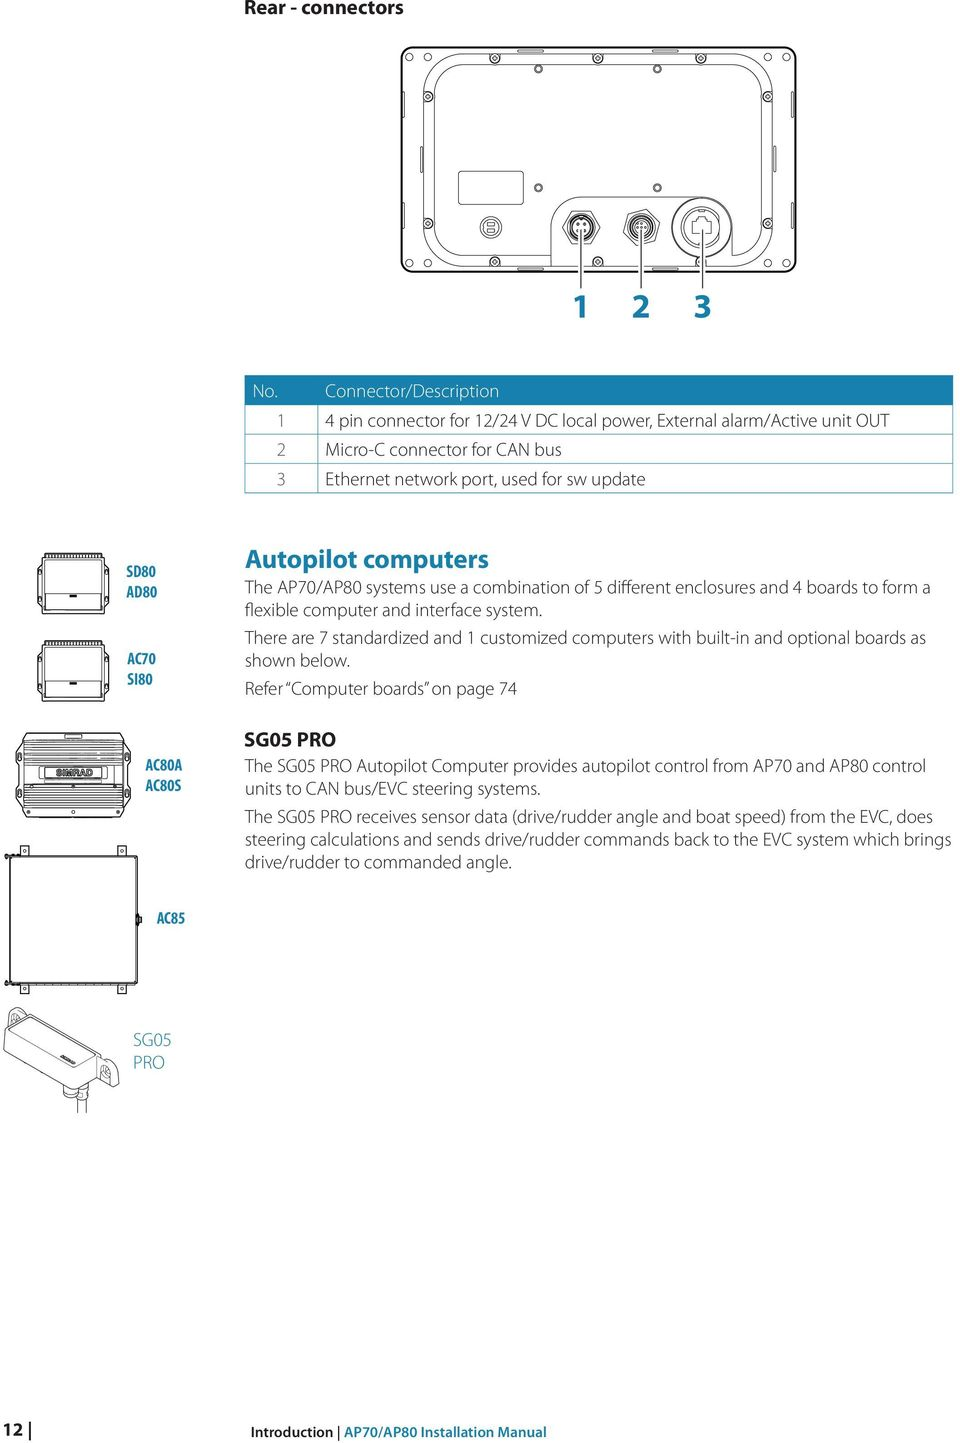 Ap70 Ap80 Installation Manual Pdf 12 To 24 Volt Wiring Diagram 4 Prong Ac80a Ac80s Autopilot Computers The Systems Use A Combination Of 5 Different Enclosures